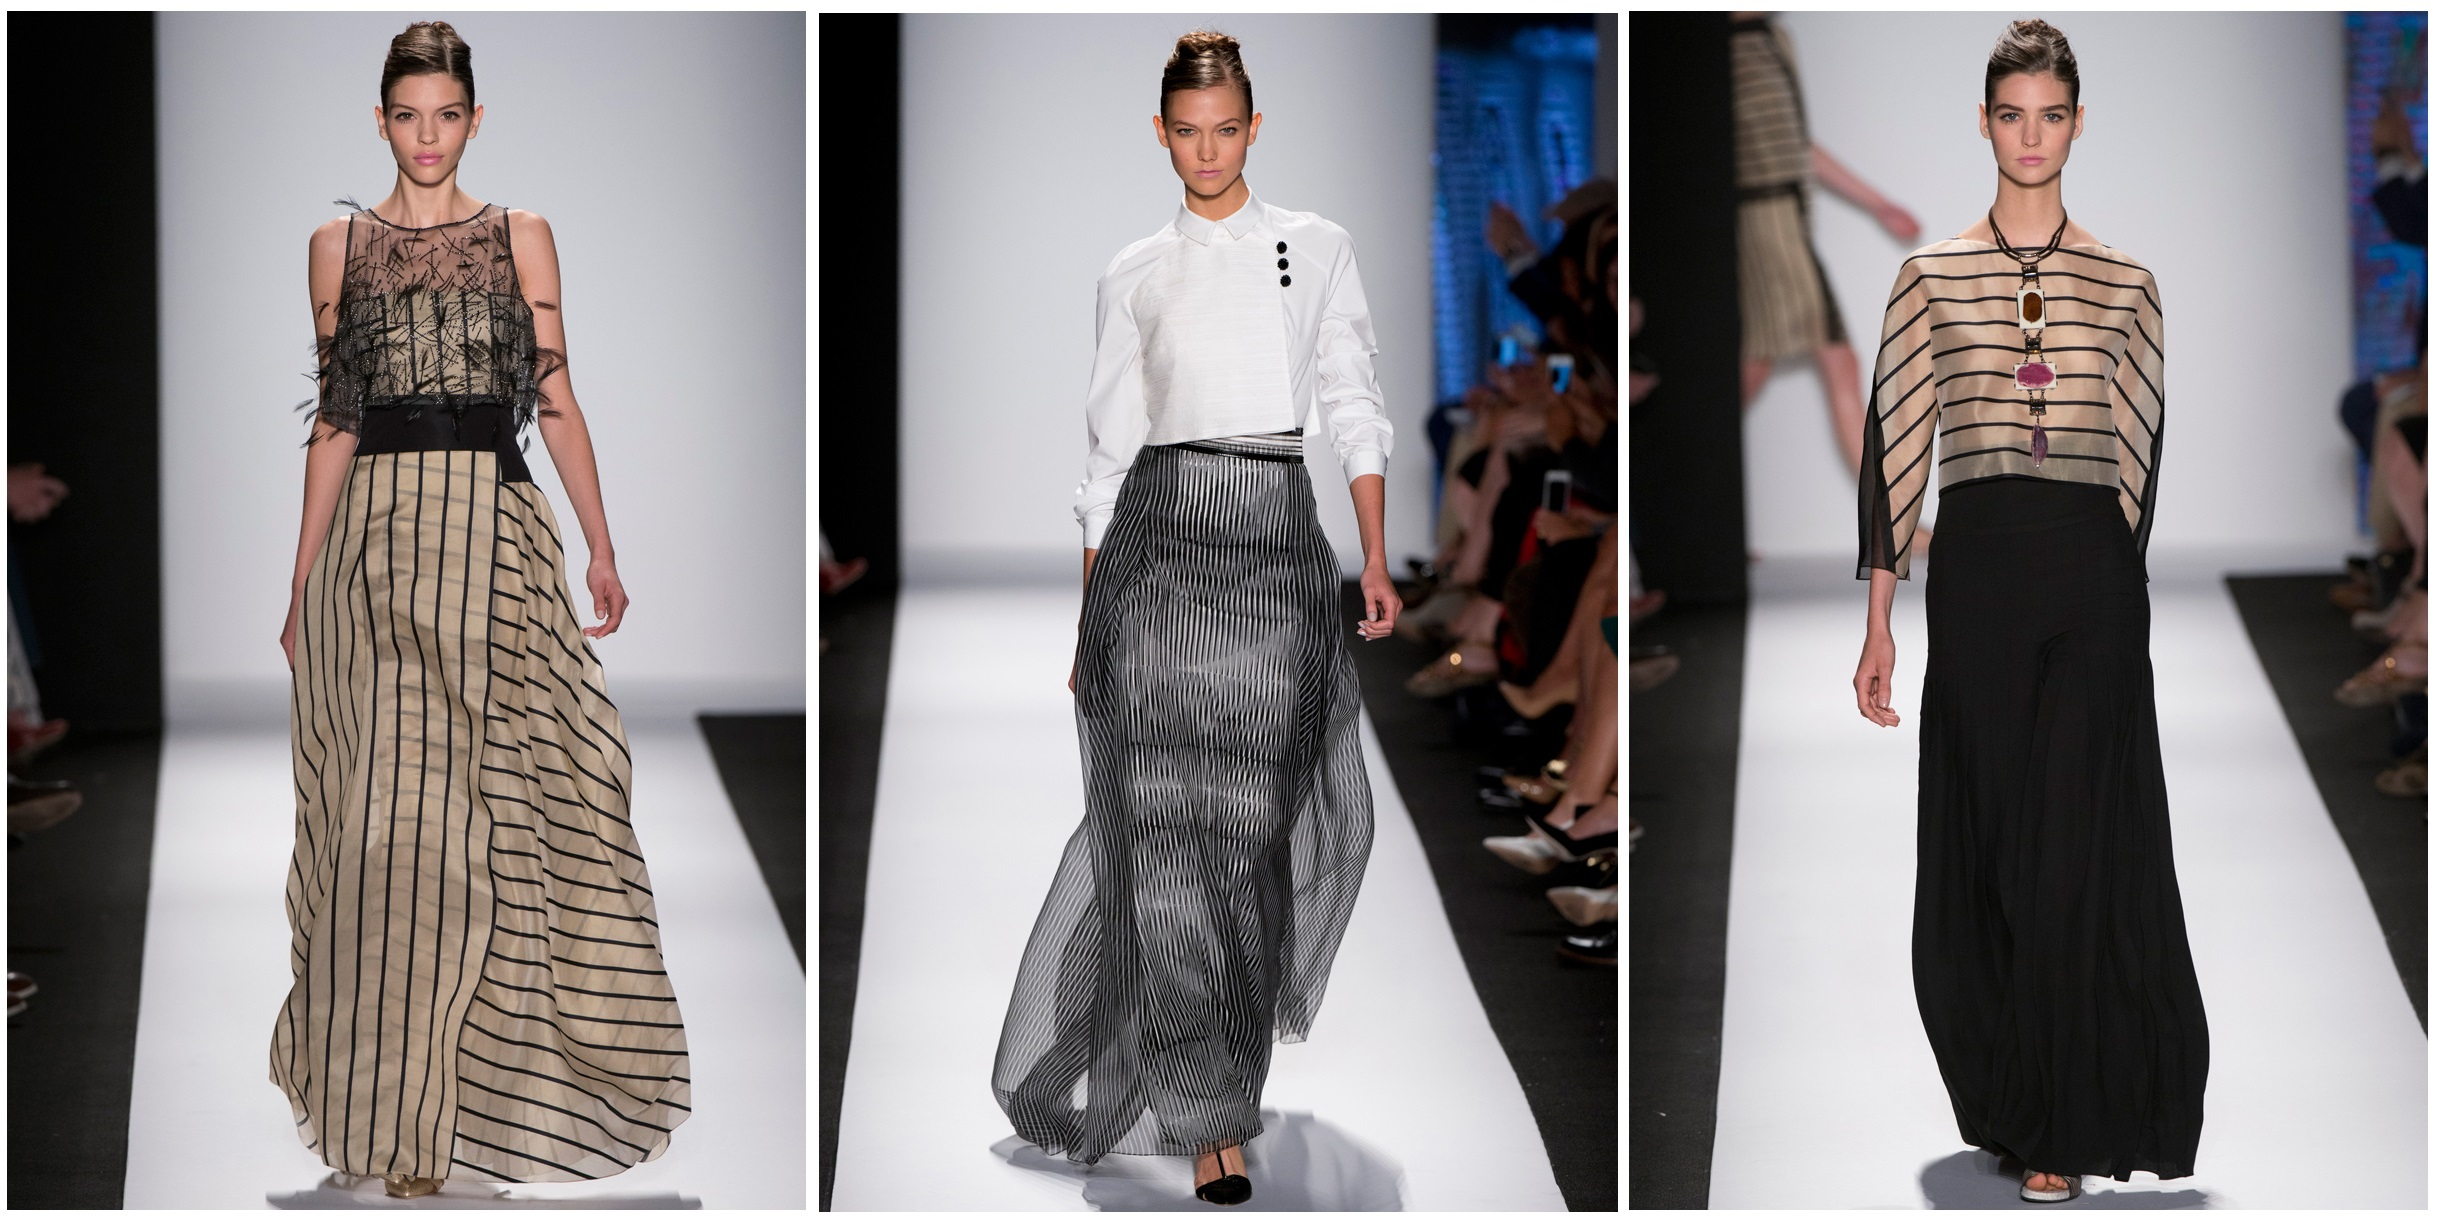 Carolina Herrera Spring 2014 Collection New York Fashion Week